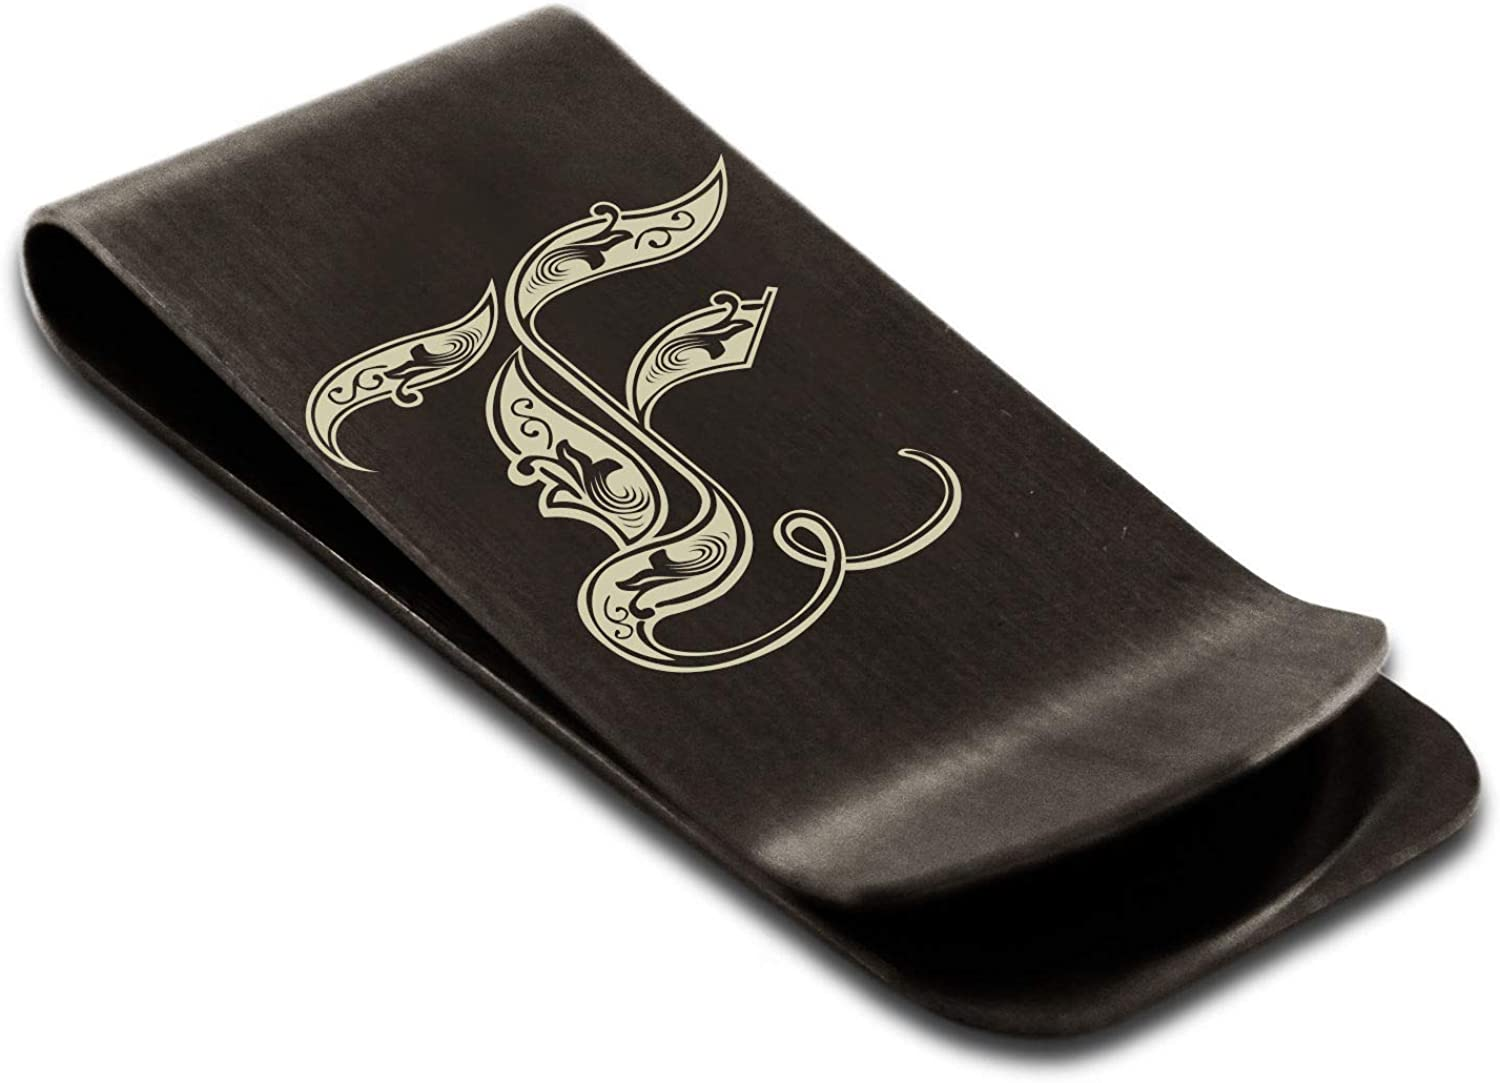 Stainless Steel Money Clip for Men Royal Initial Monogram Wallet Cash Card Holder with Personalized Stainless Steel Money Clip with Custom Engraving Money Clip for Dad